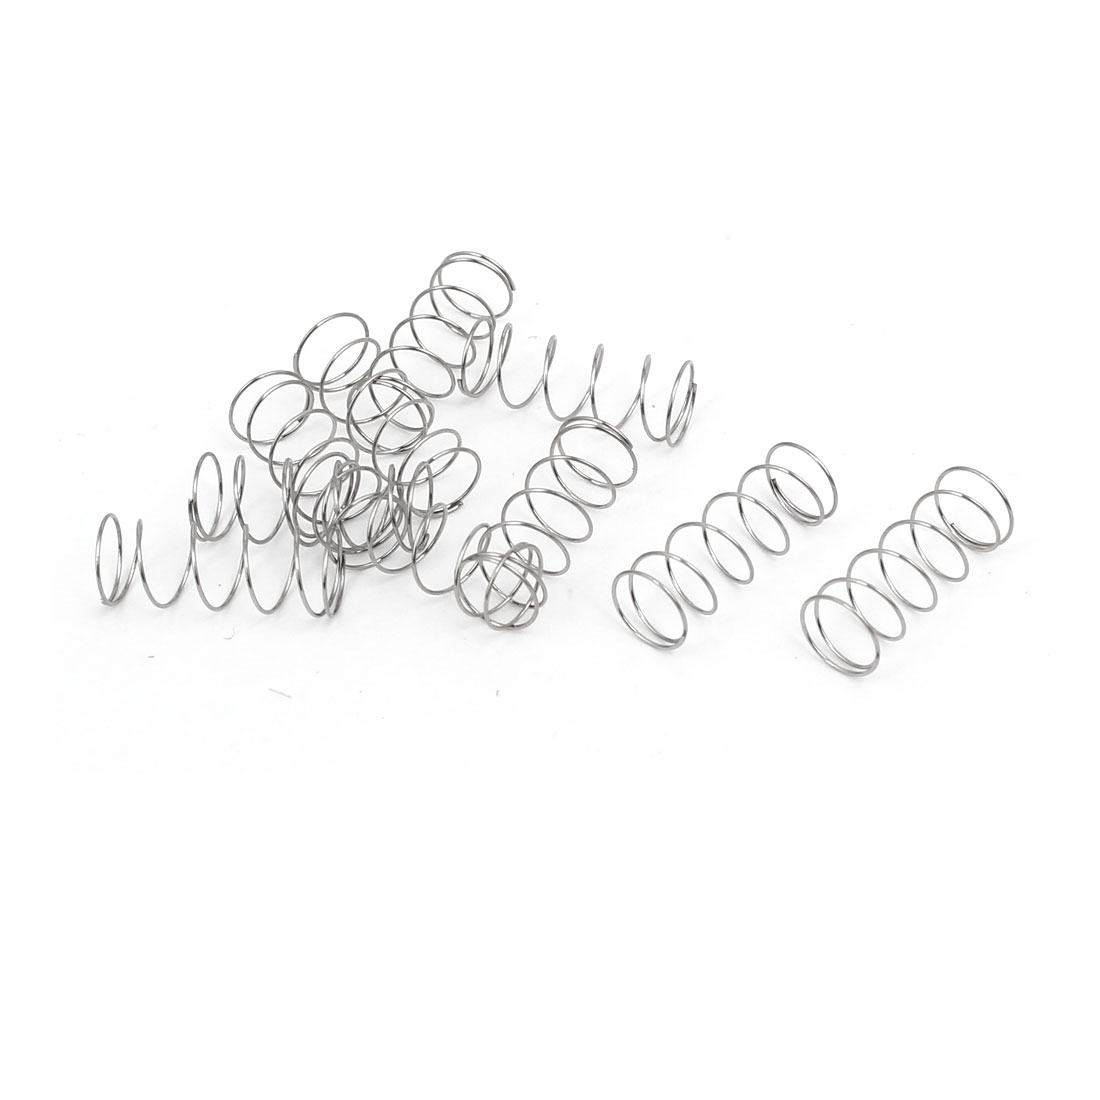 0.3mmx6mmx15mm 304 Stainless Steel Compression Springs Silver Tone 10pcs